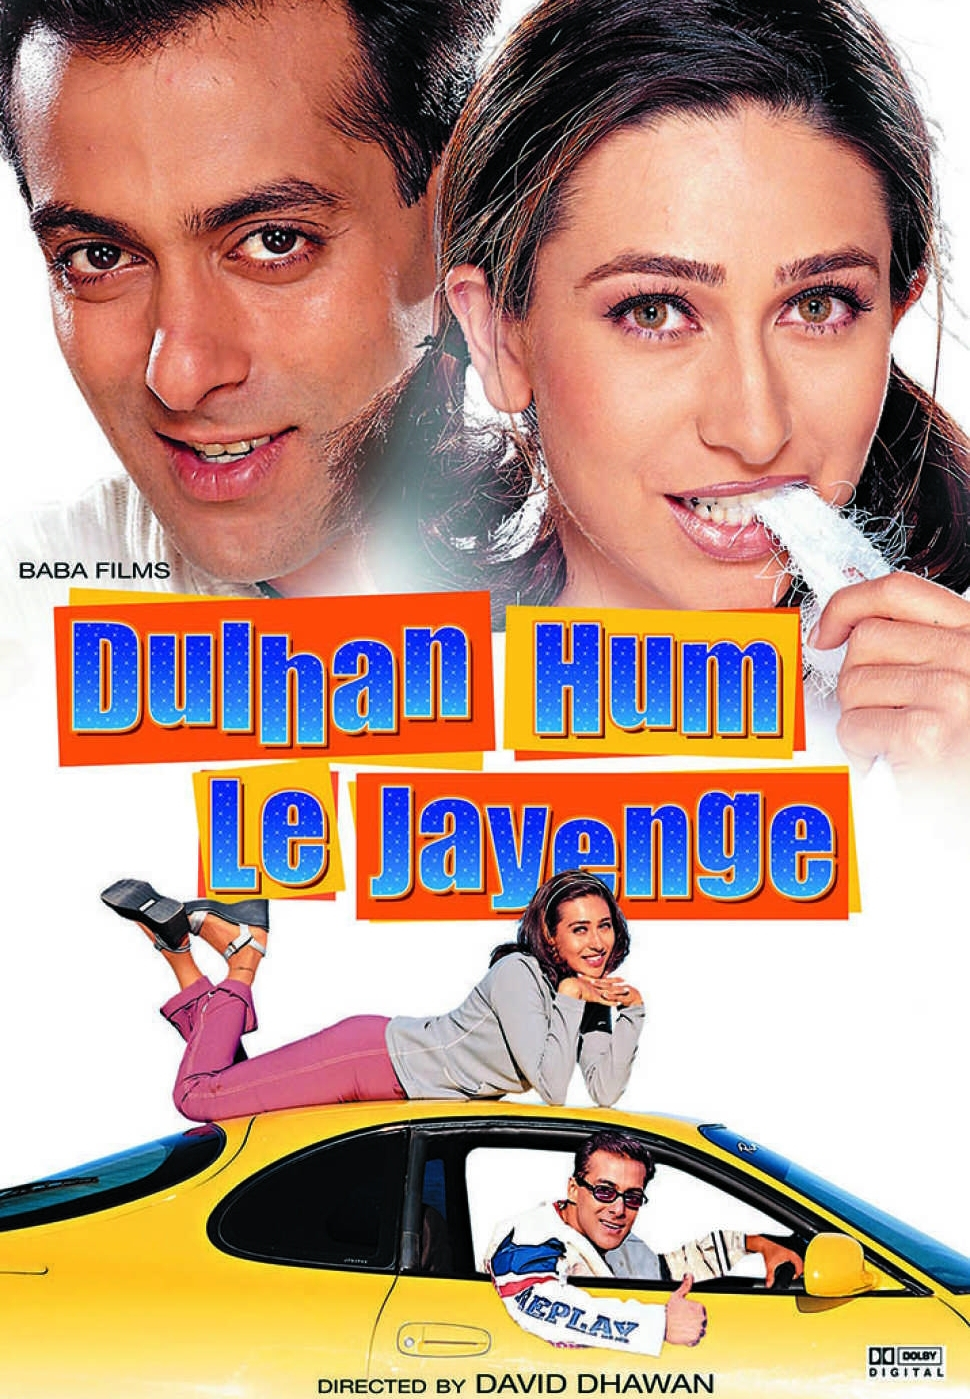 JAYENGE TÉLÉCHARGER COMPLET HINDI LE FILM DILWALE DULHANIA